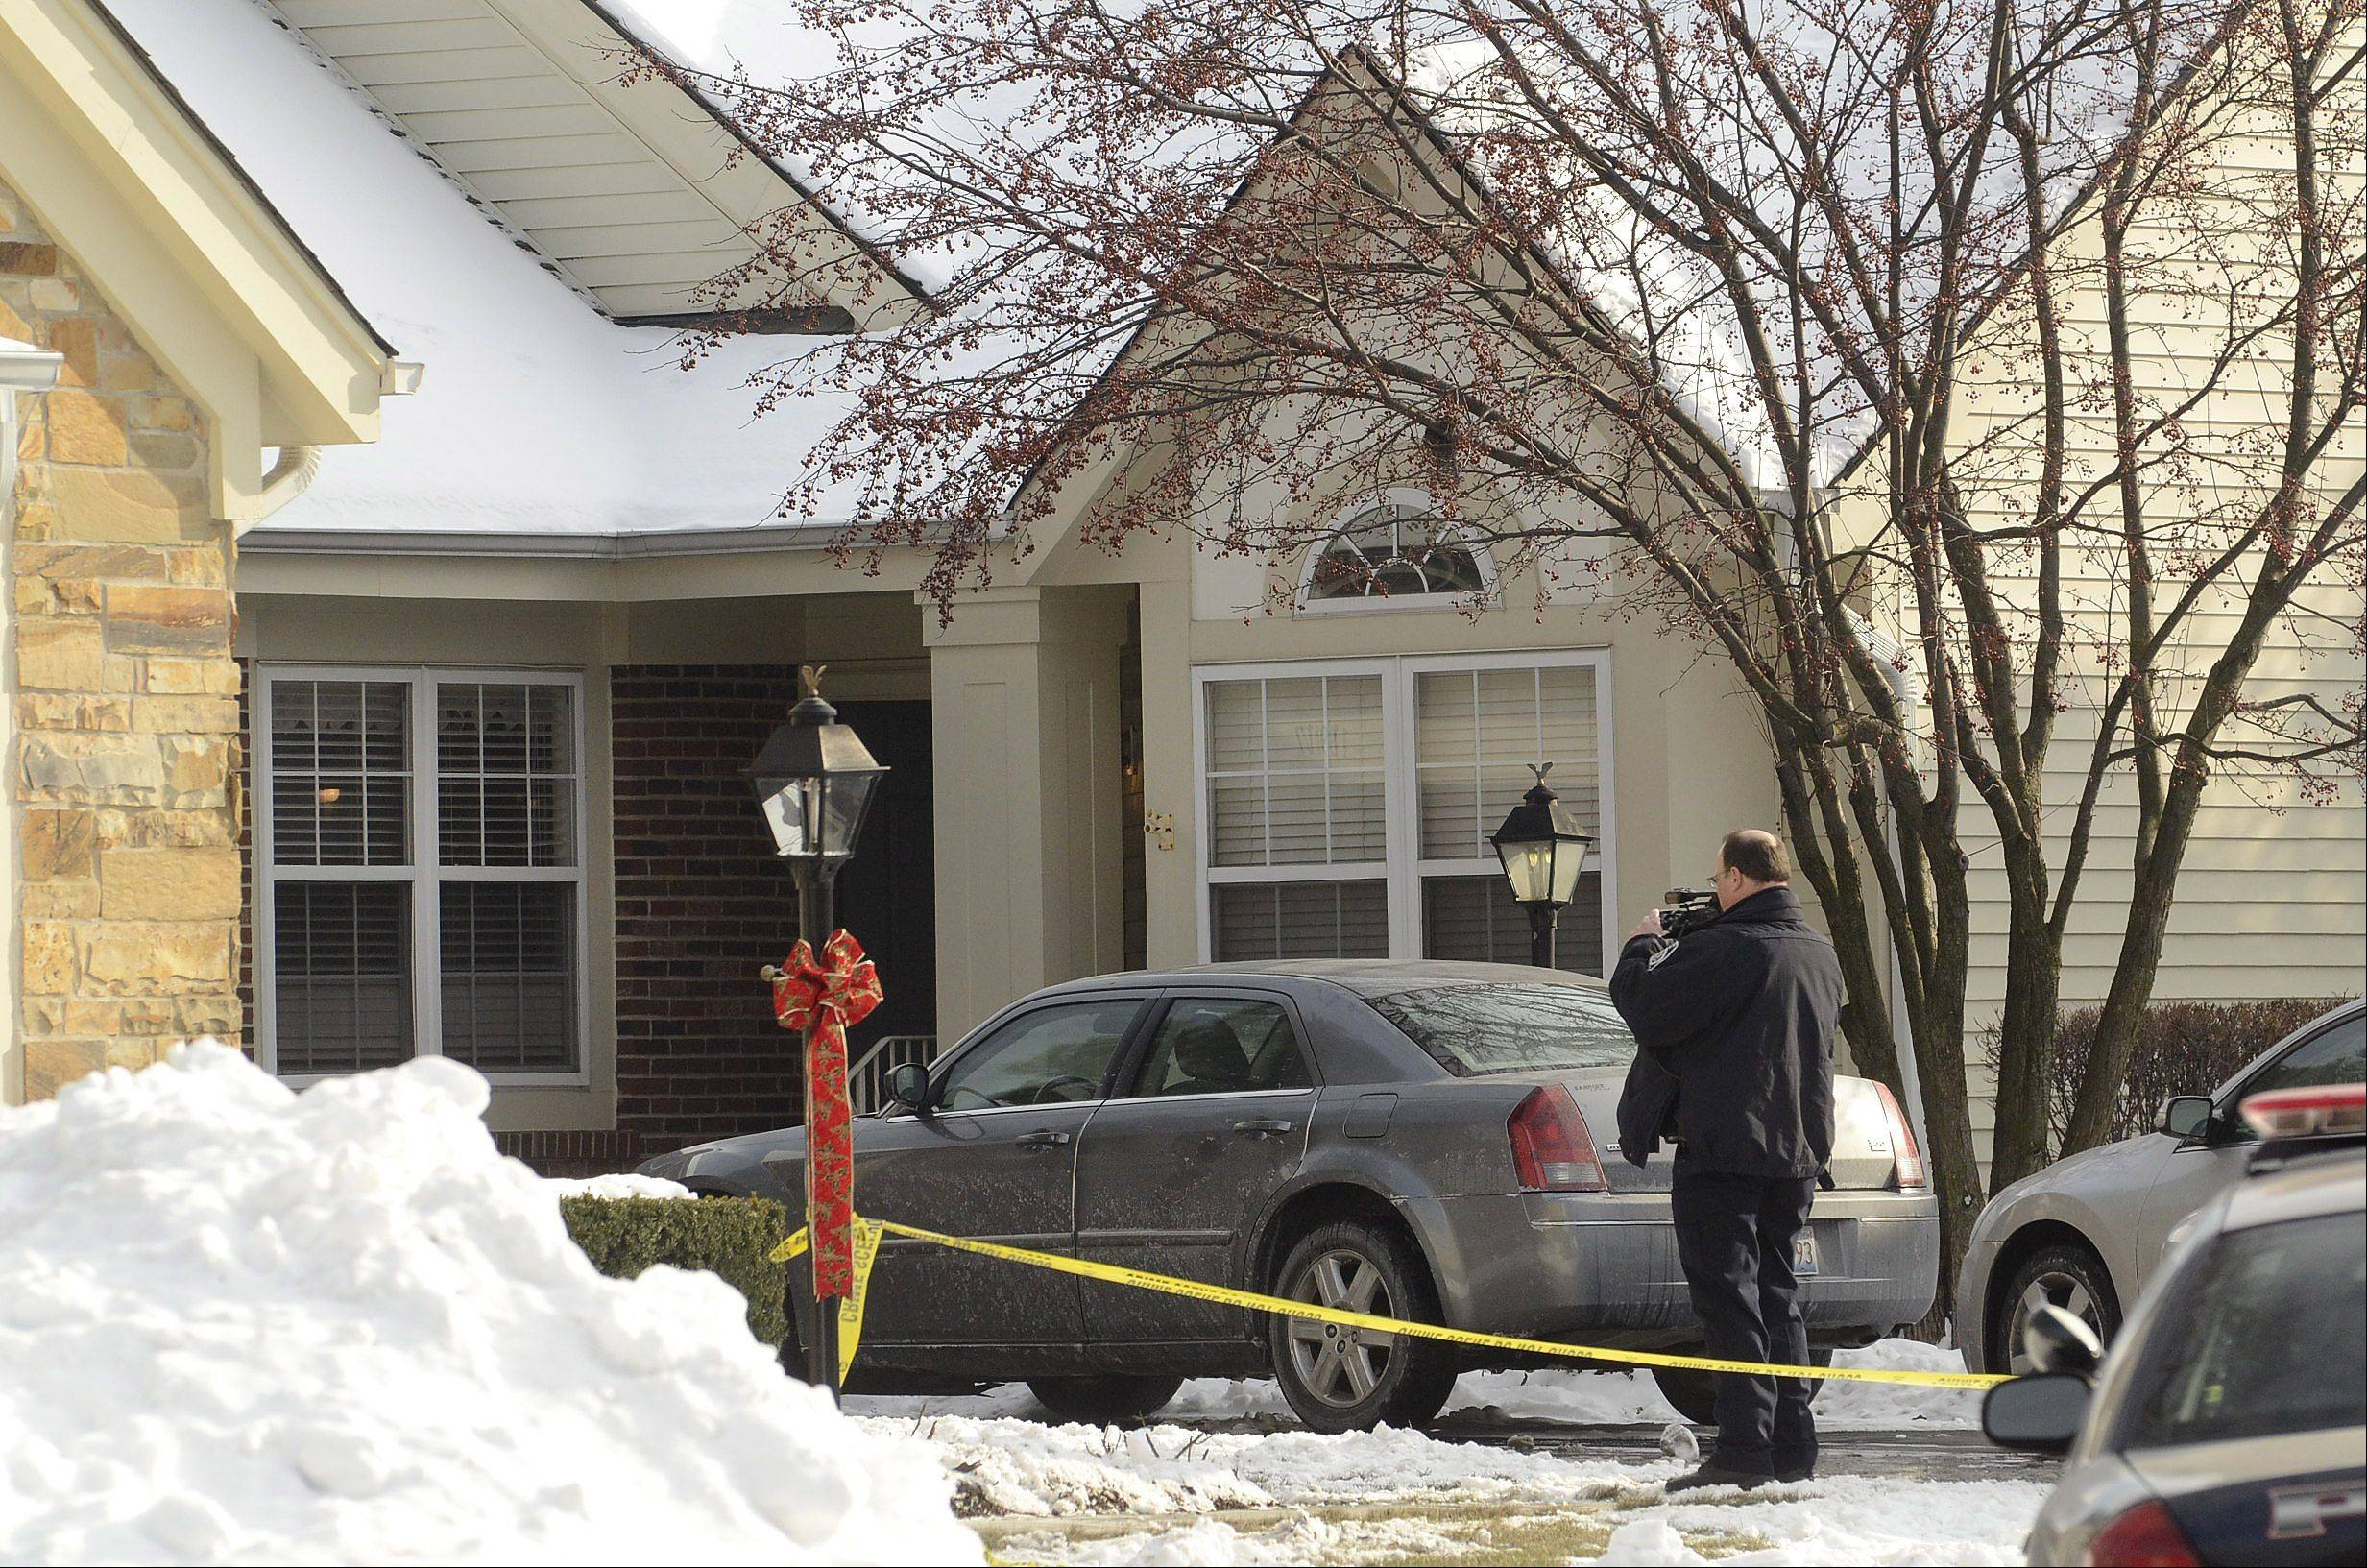 Bob Chwedyk/bchwedyk@dailyherald.comPolice the investigate the shooting scene in Arlington Heights.